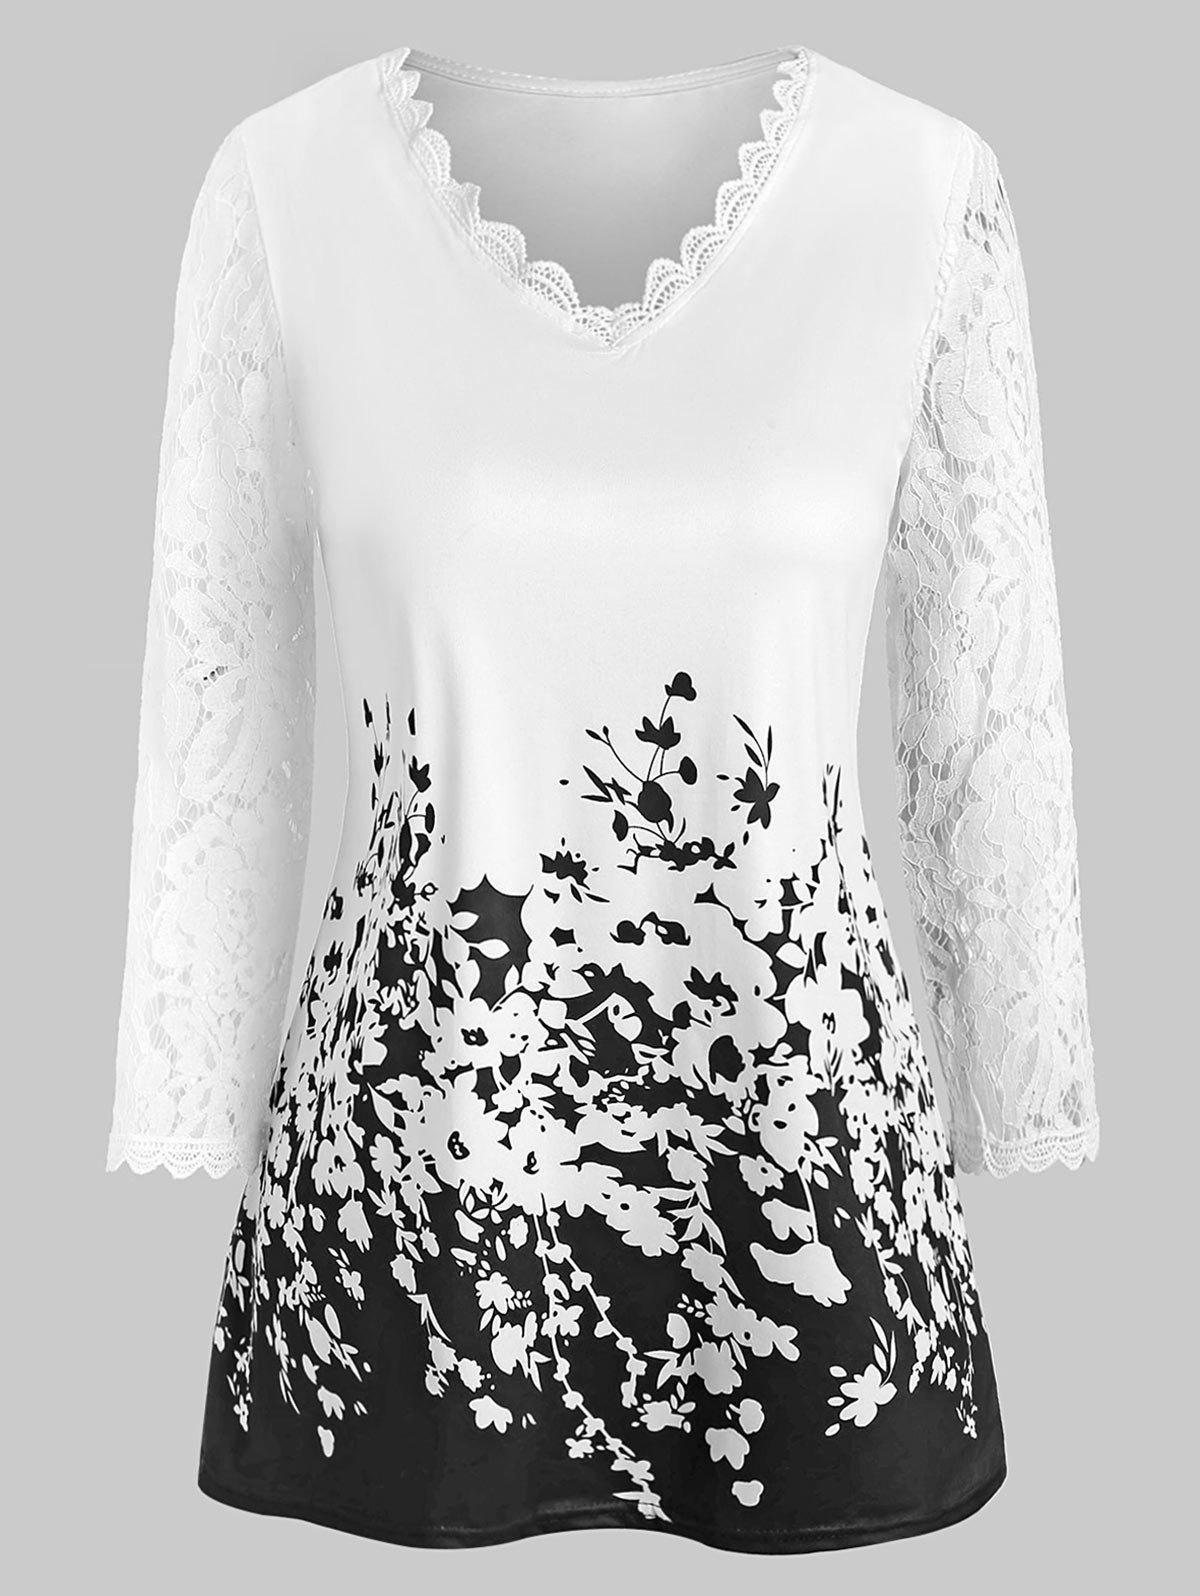 Discount Lace Panel Floral Print V Neck Tee